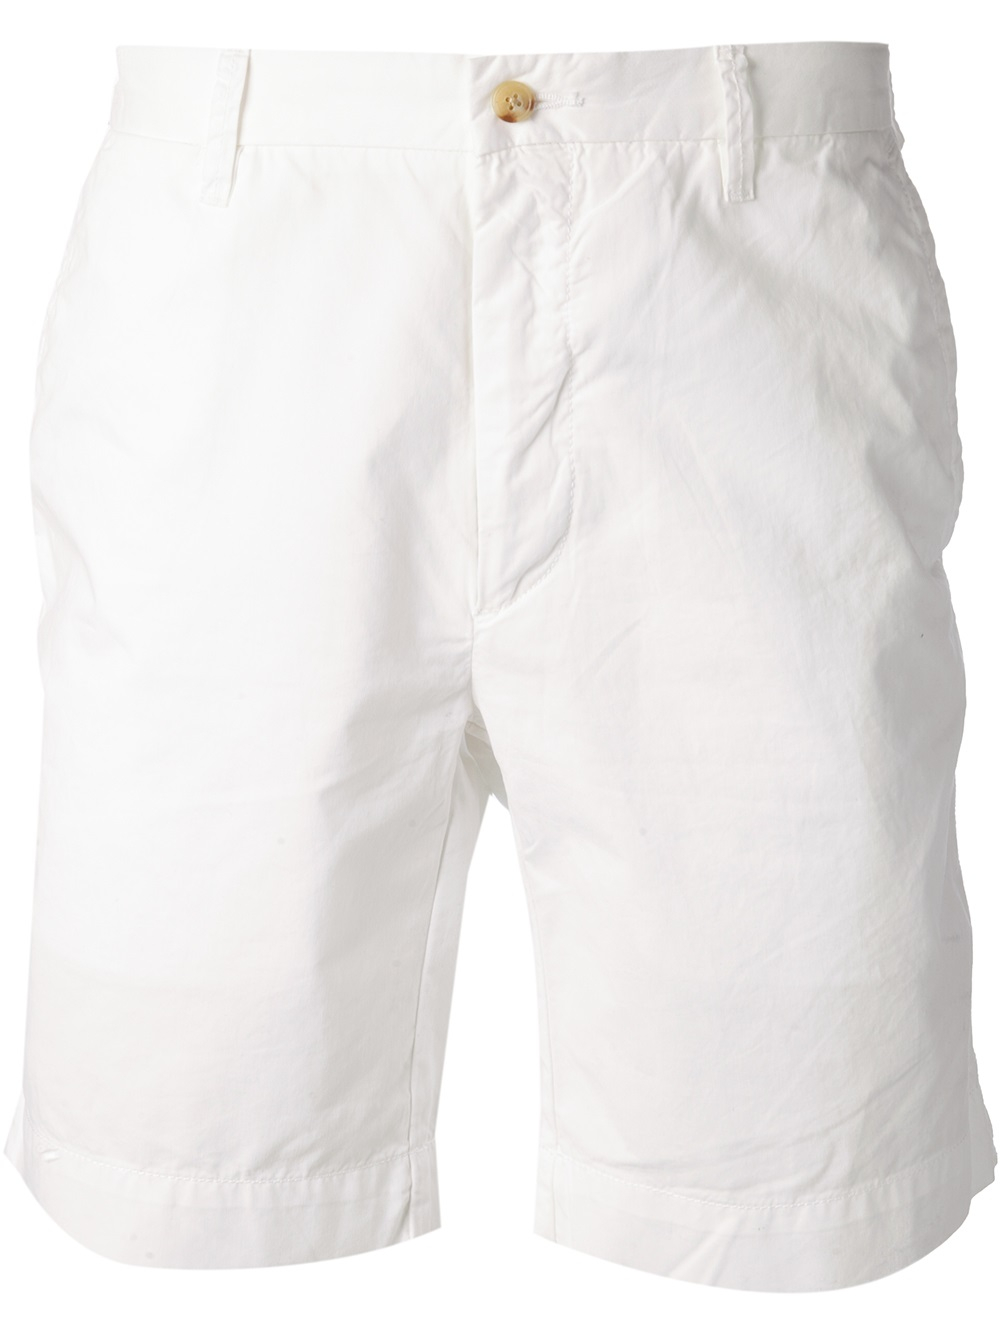 Lyst Polo Ralph Lauren Bermuda Shorts In White For Men